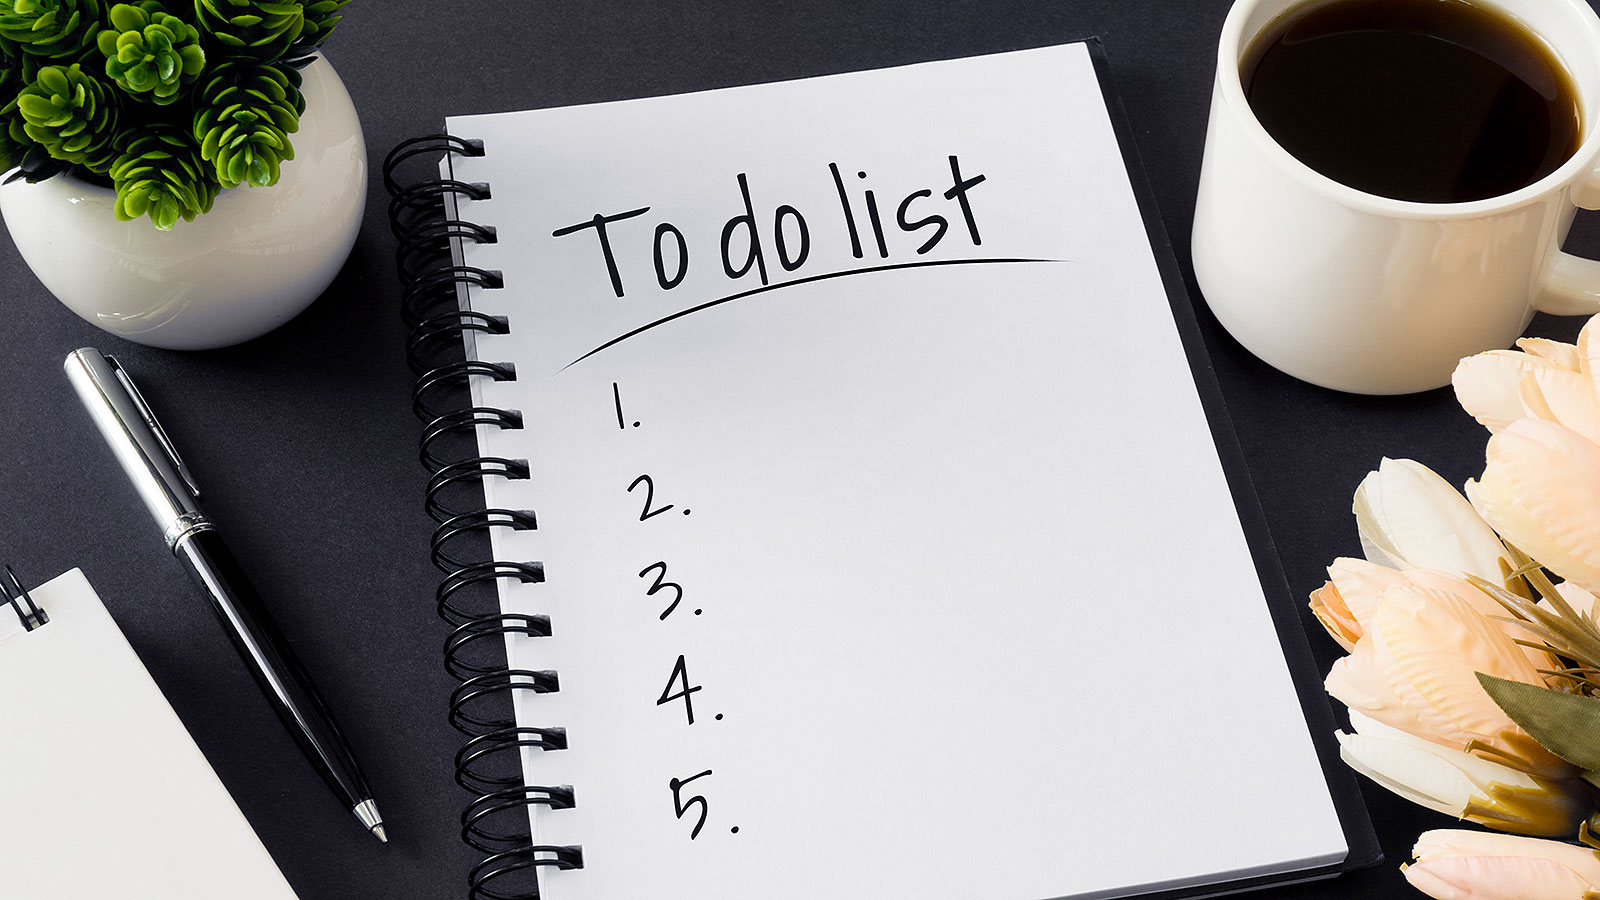 This CEO has a very manageable hack for conquering his to-do list